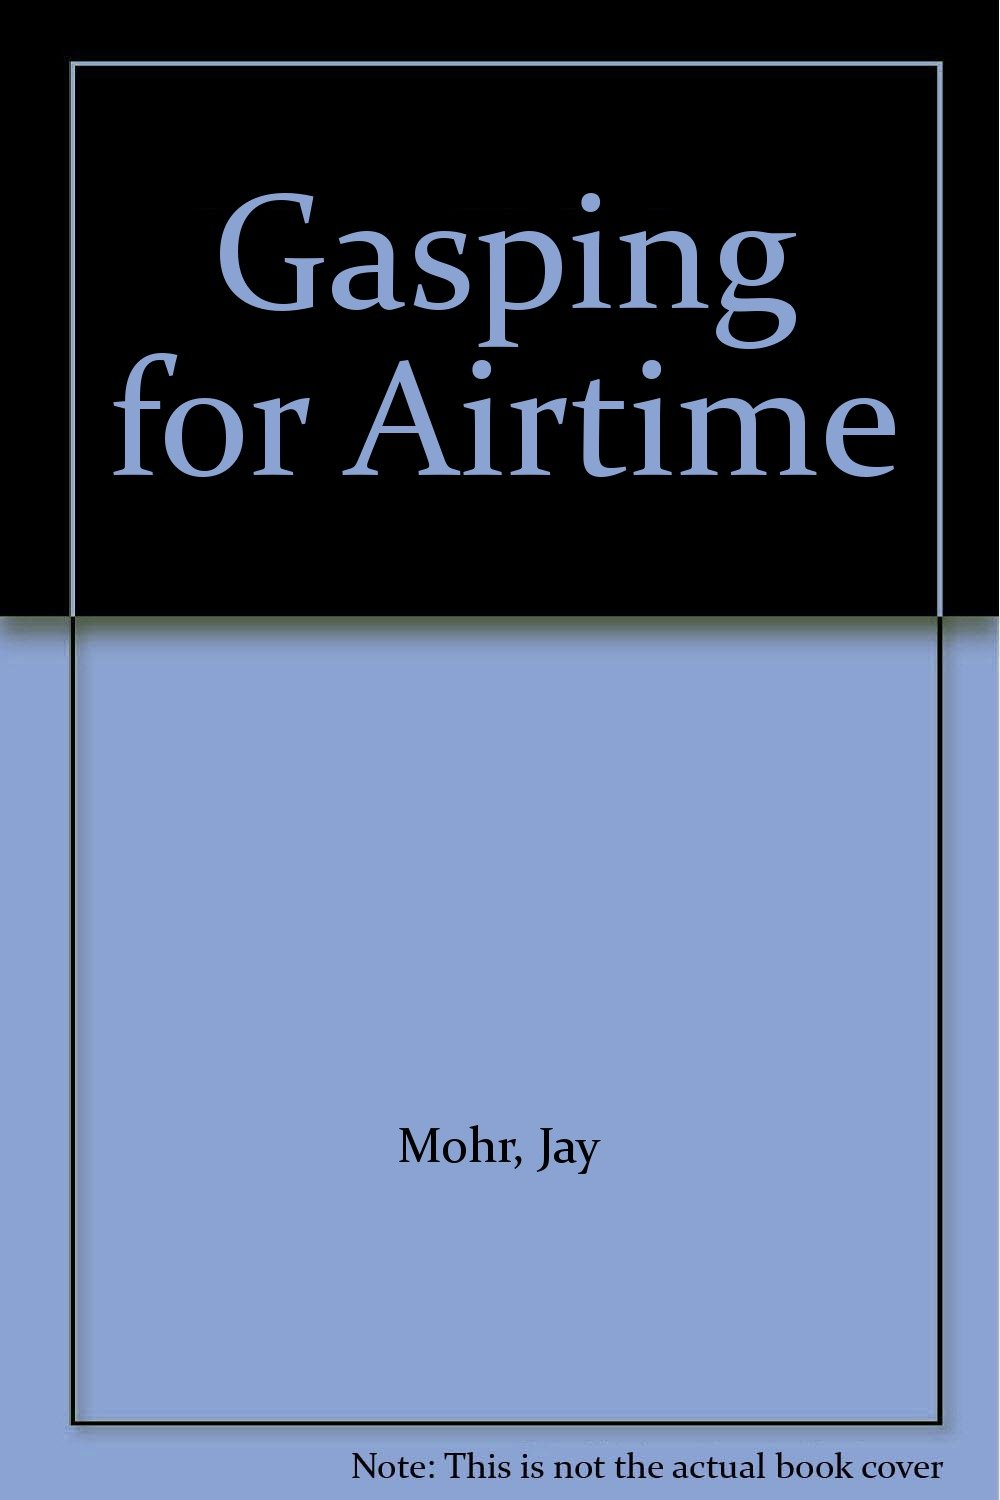 Gasping for airtime